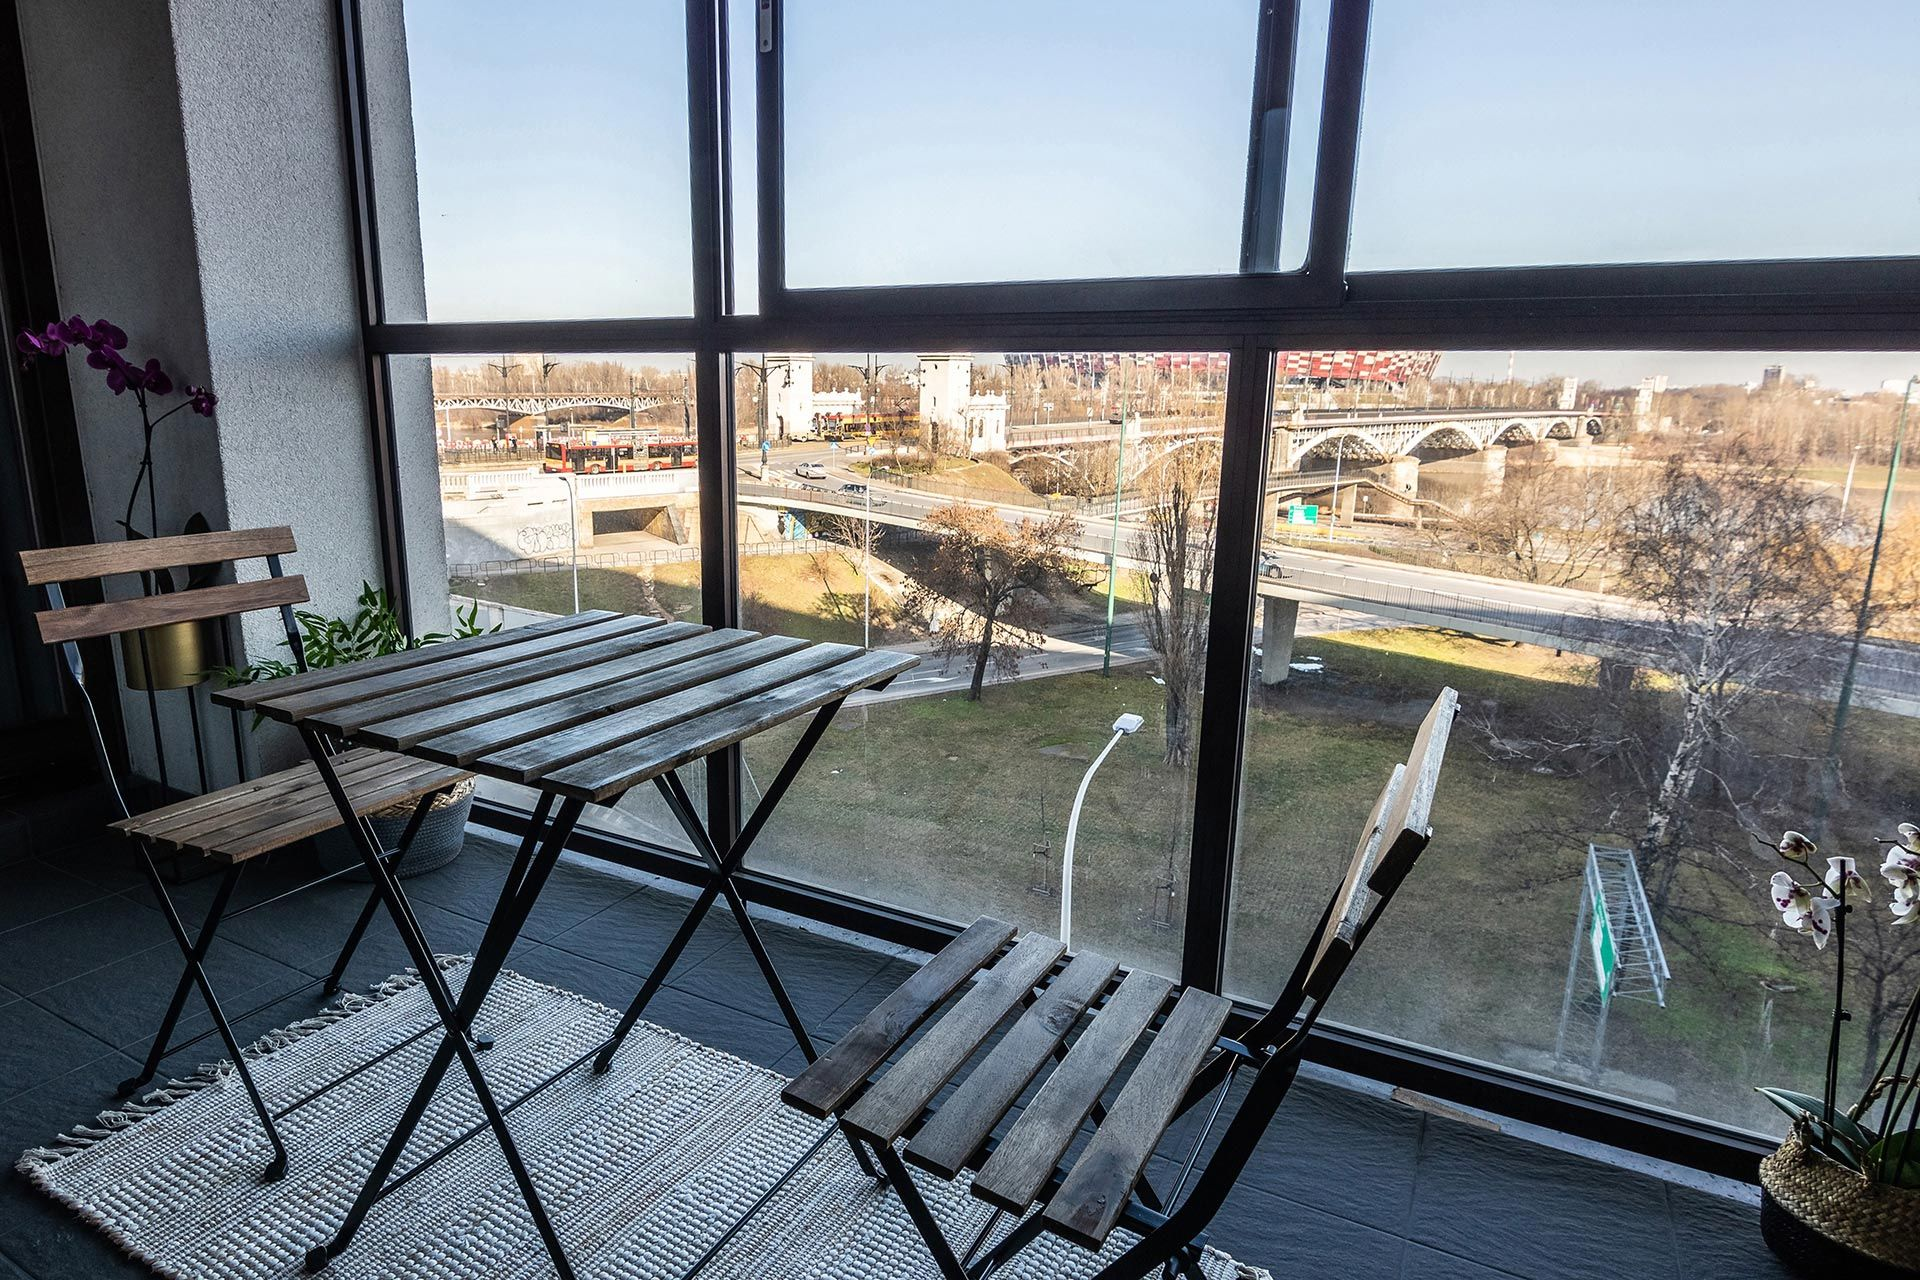 Studio - Large apartment to rent in Warsaw UPR-A-077-2